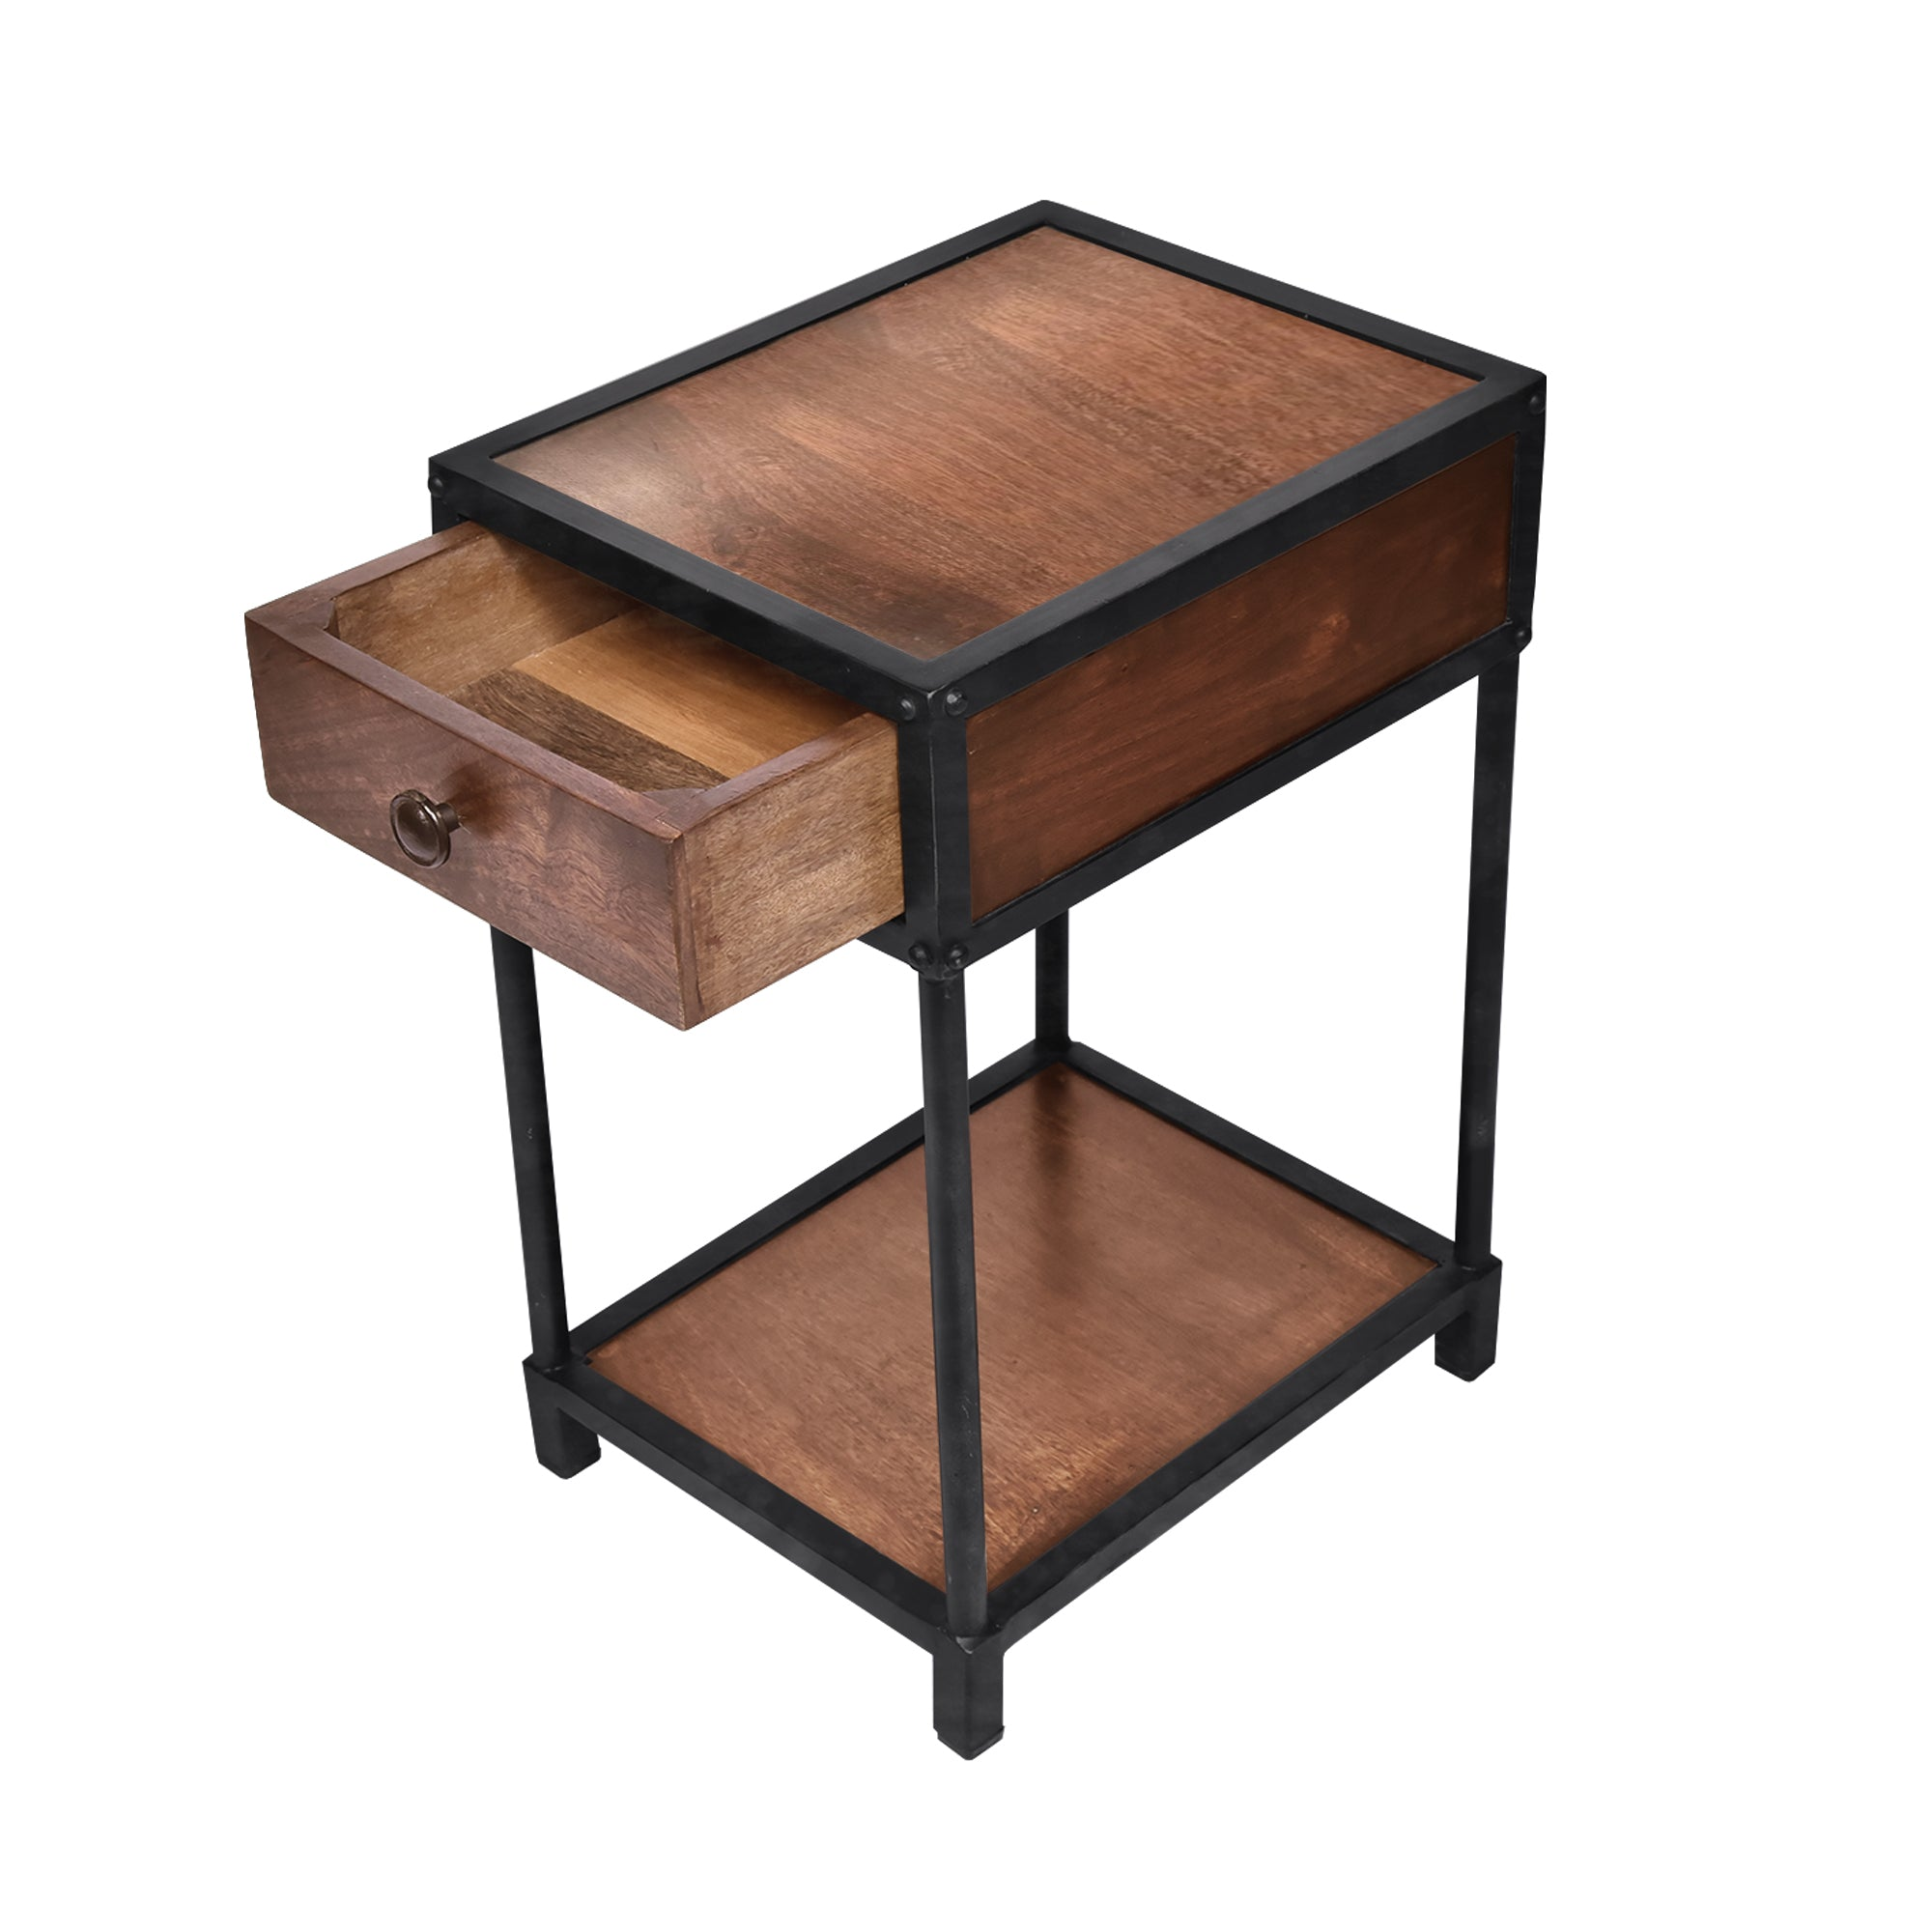 The Urban Port UPT-186119 Metal Framed Mango Wood End Table